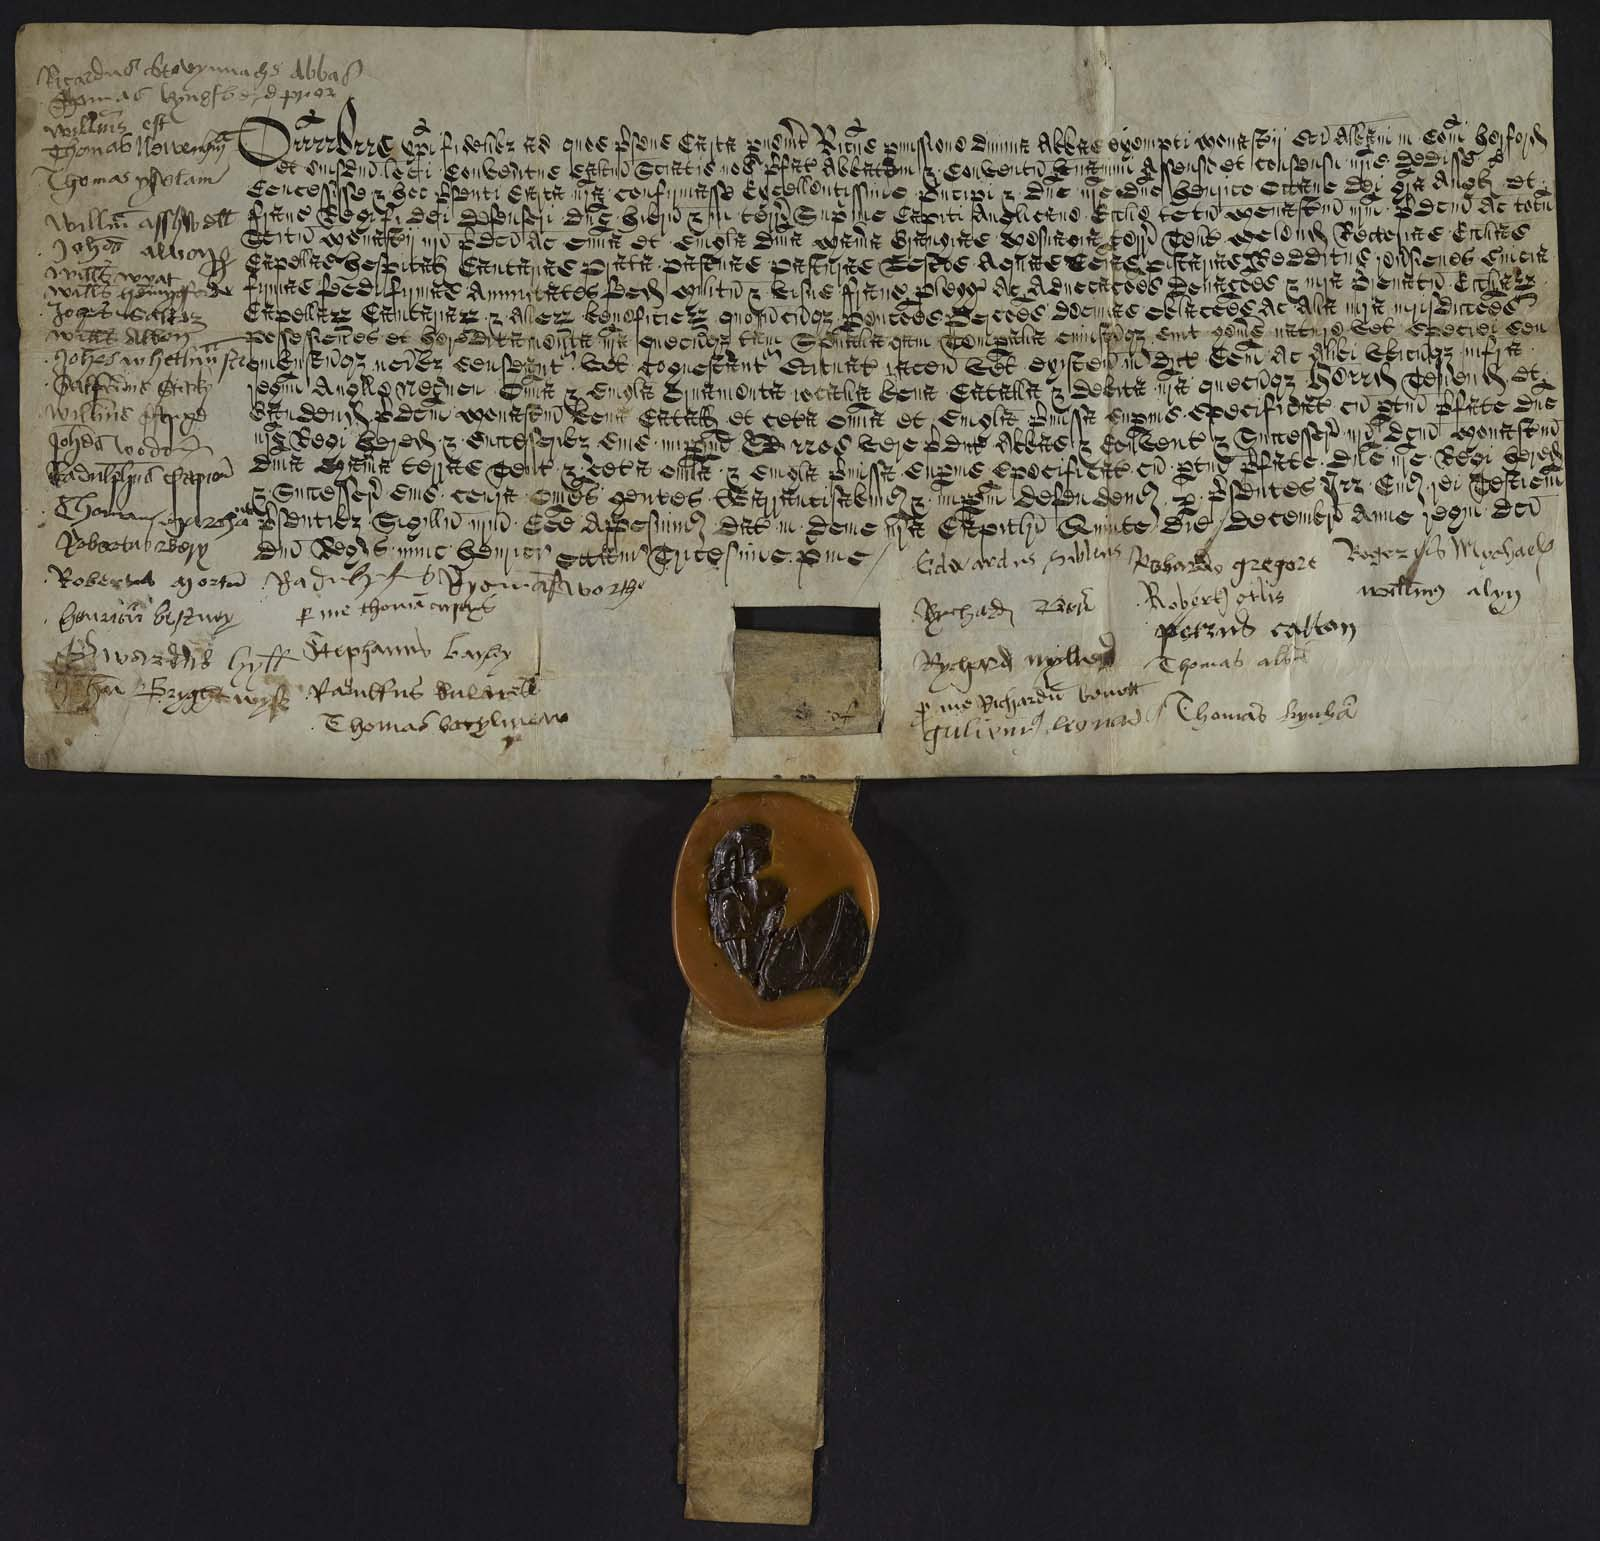 medieval deed with wax and fabric seal at the bottom